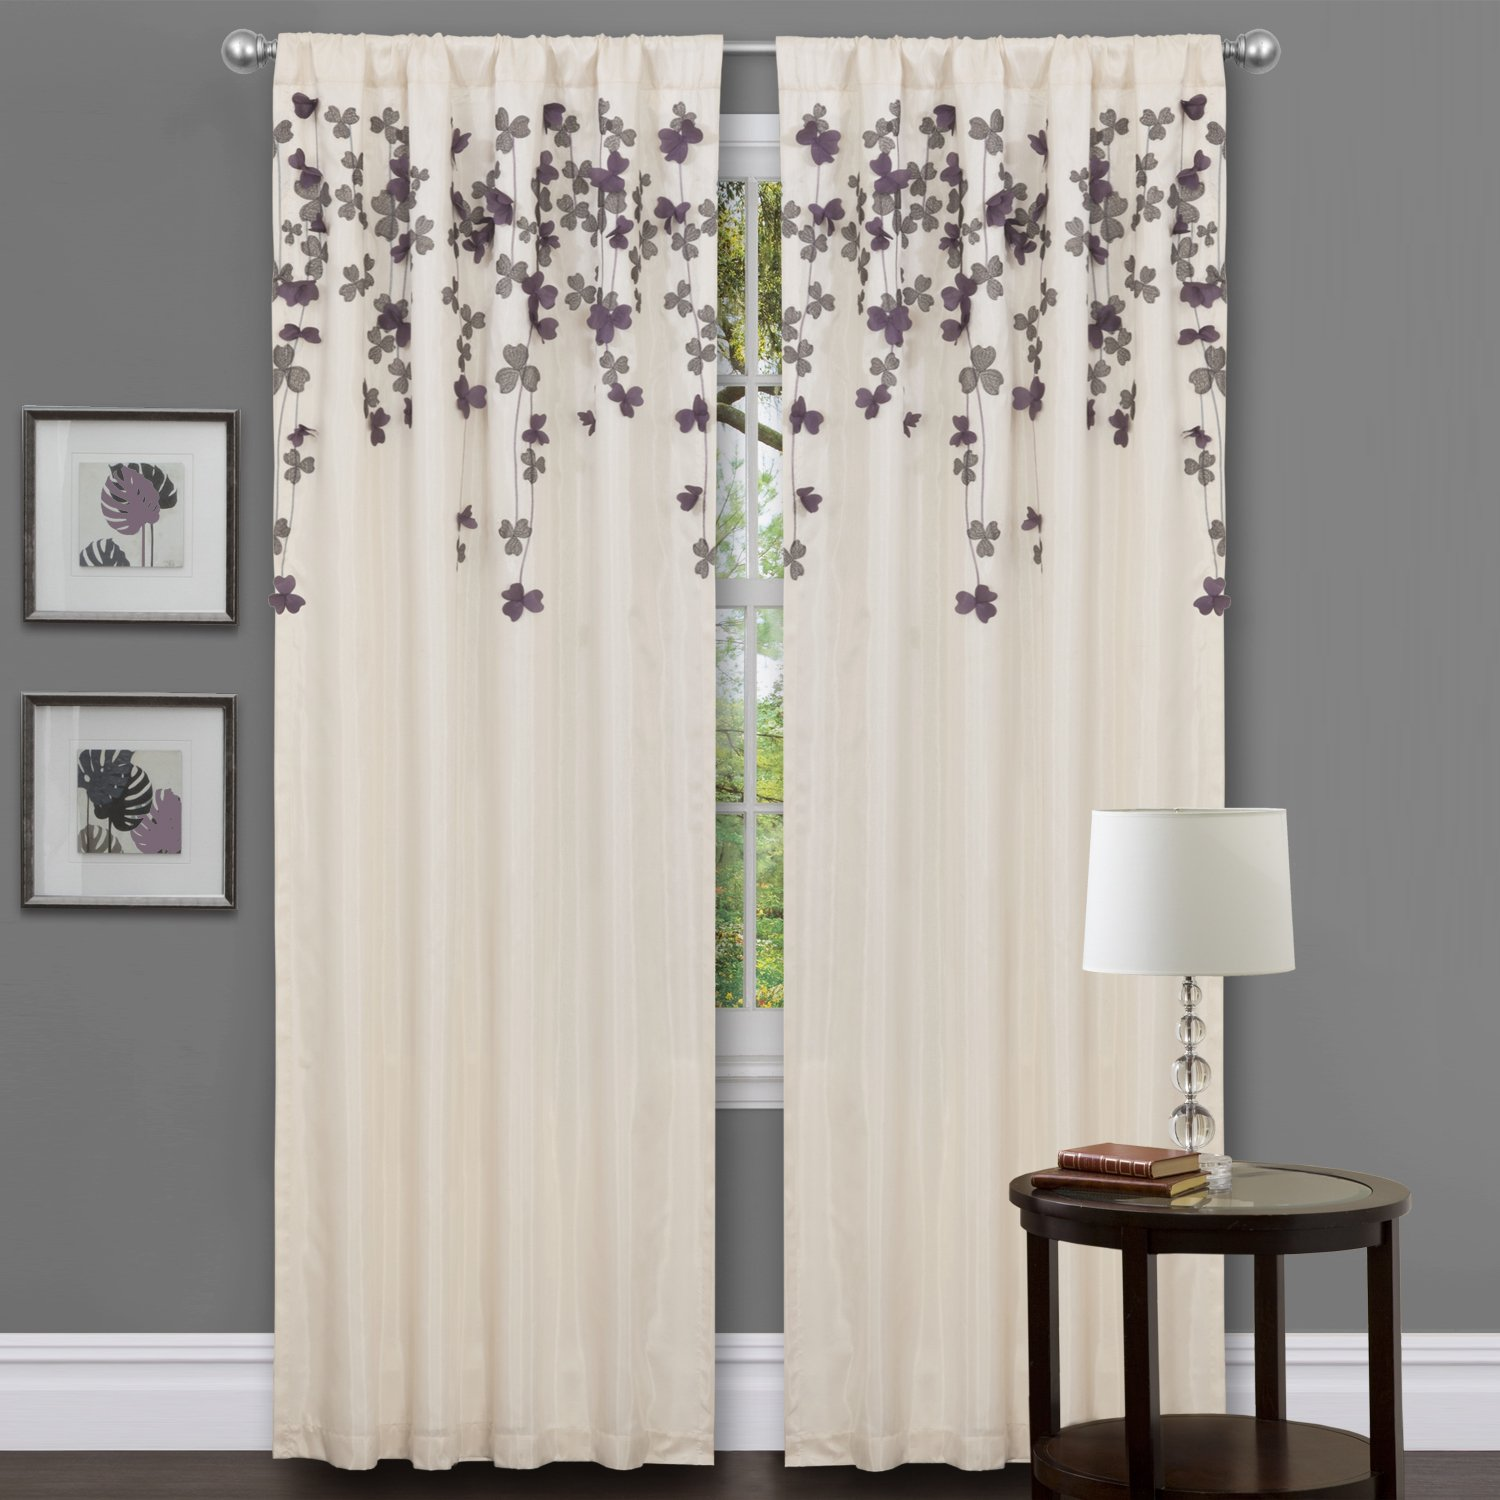 curtains curtain beautiful cute with purple for and color decor panels marvellous window interior sheers